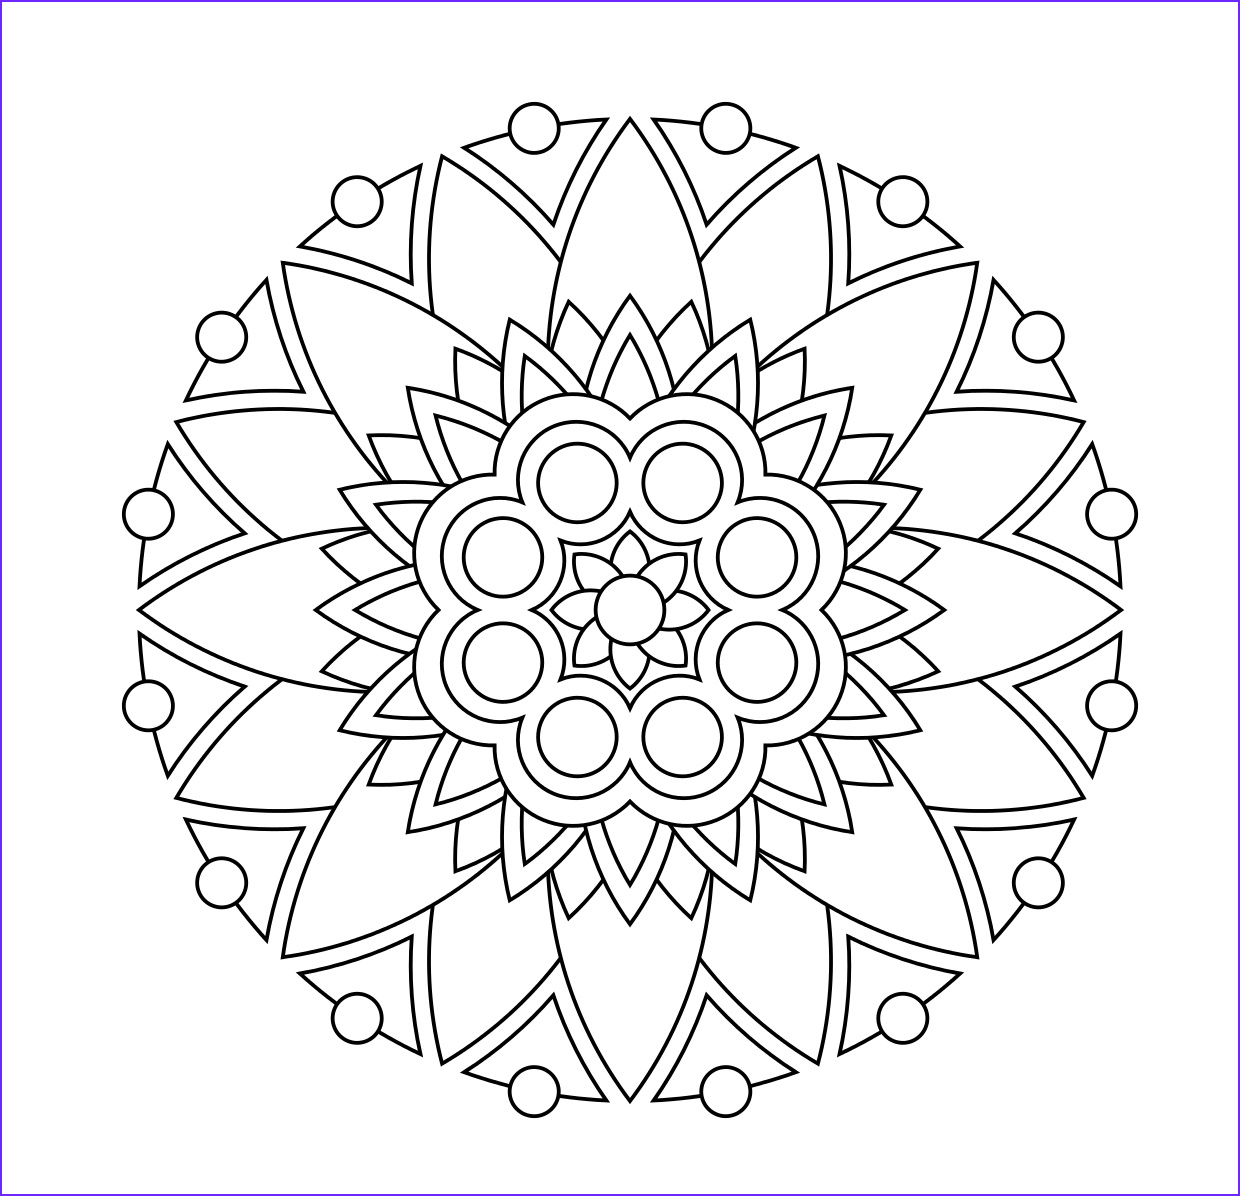 Stress Relieving Coloring Pages Unique Stock 22 Printable Mandala & Abstract Colouring Pages for